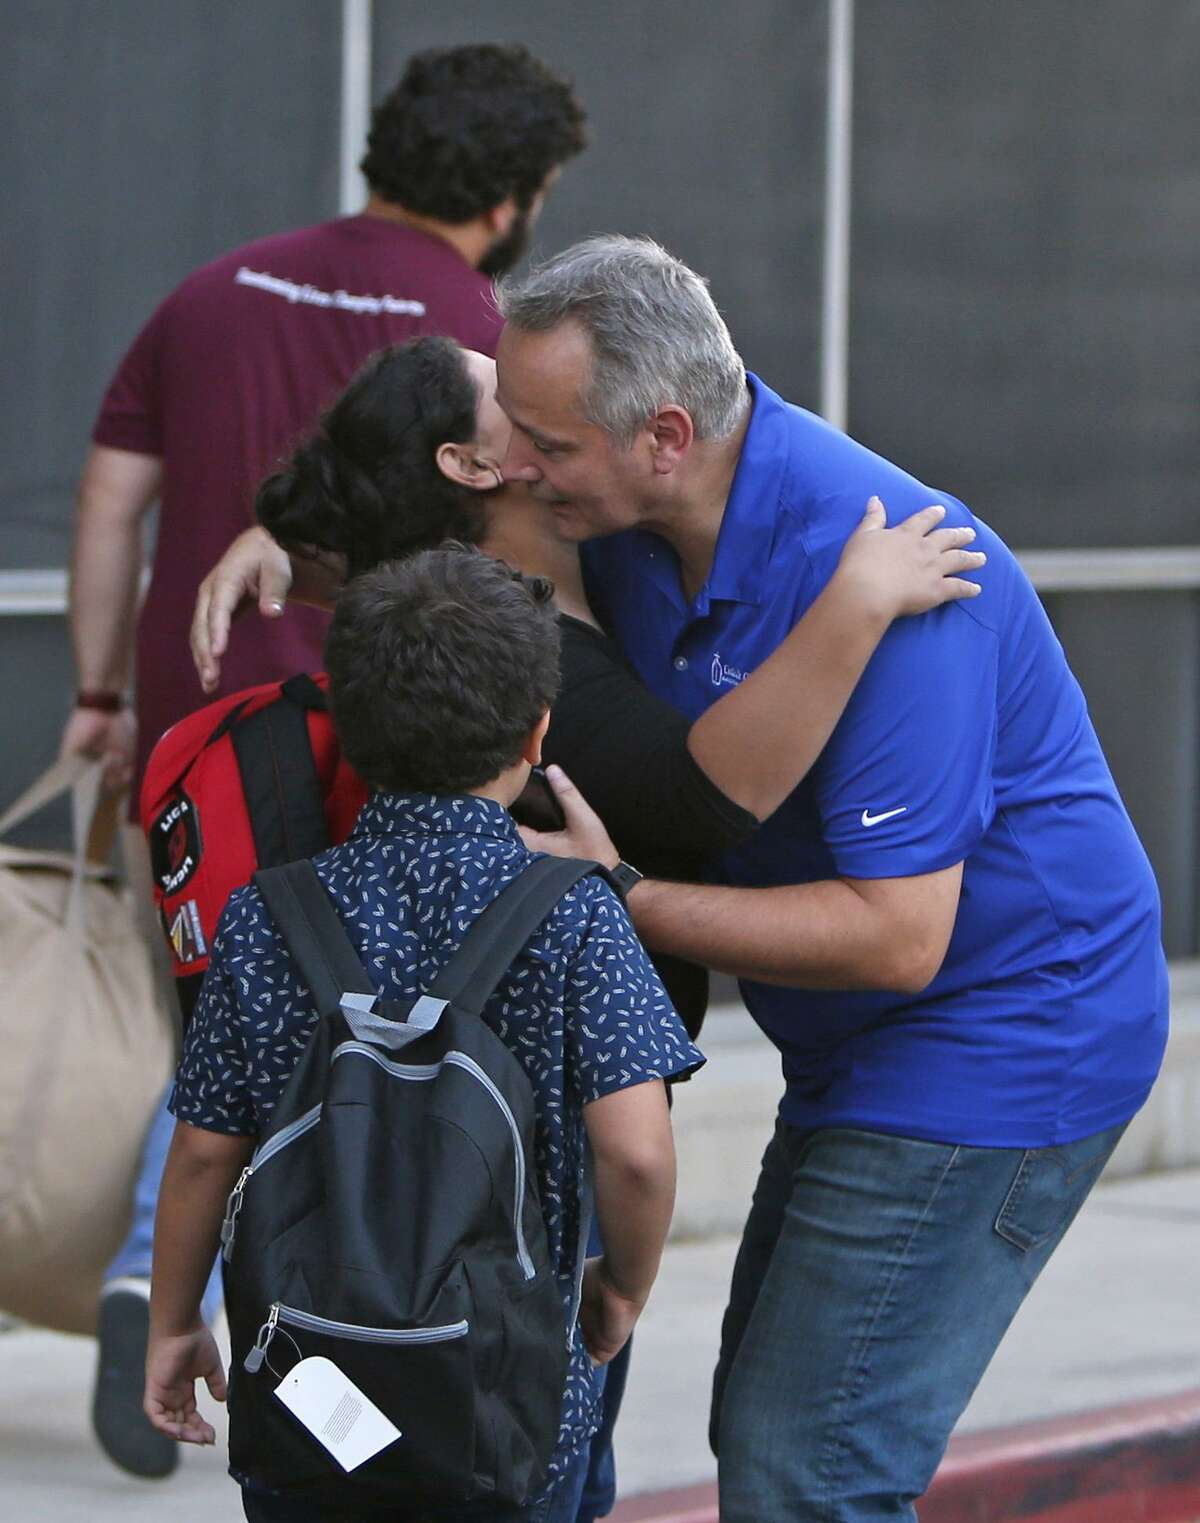 Antonio Fernández (right), head of Catholic Charities of San Antonio, says goodbye to a family of recently reunified immigrants after they were processed at Wednesday at Catholic Charities.